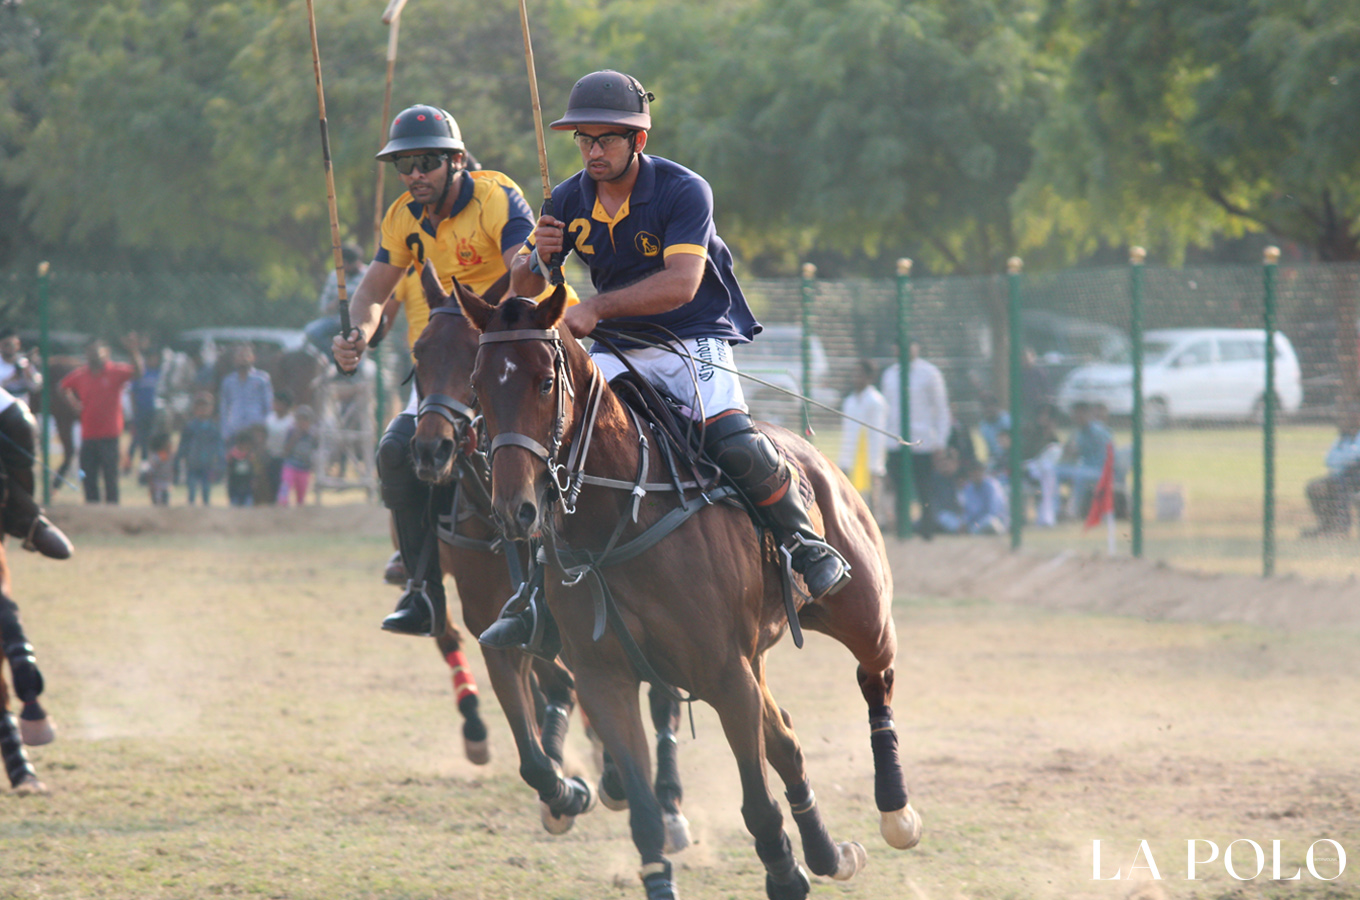 The Jodhpur Polo Cup - Arena Polo trophy